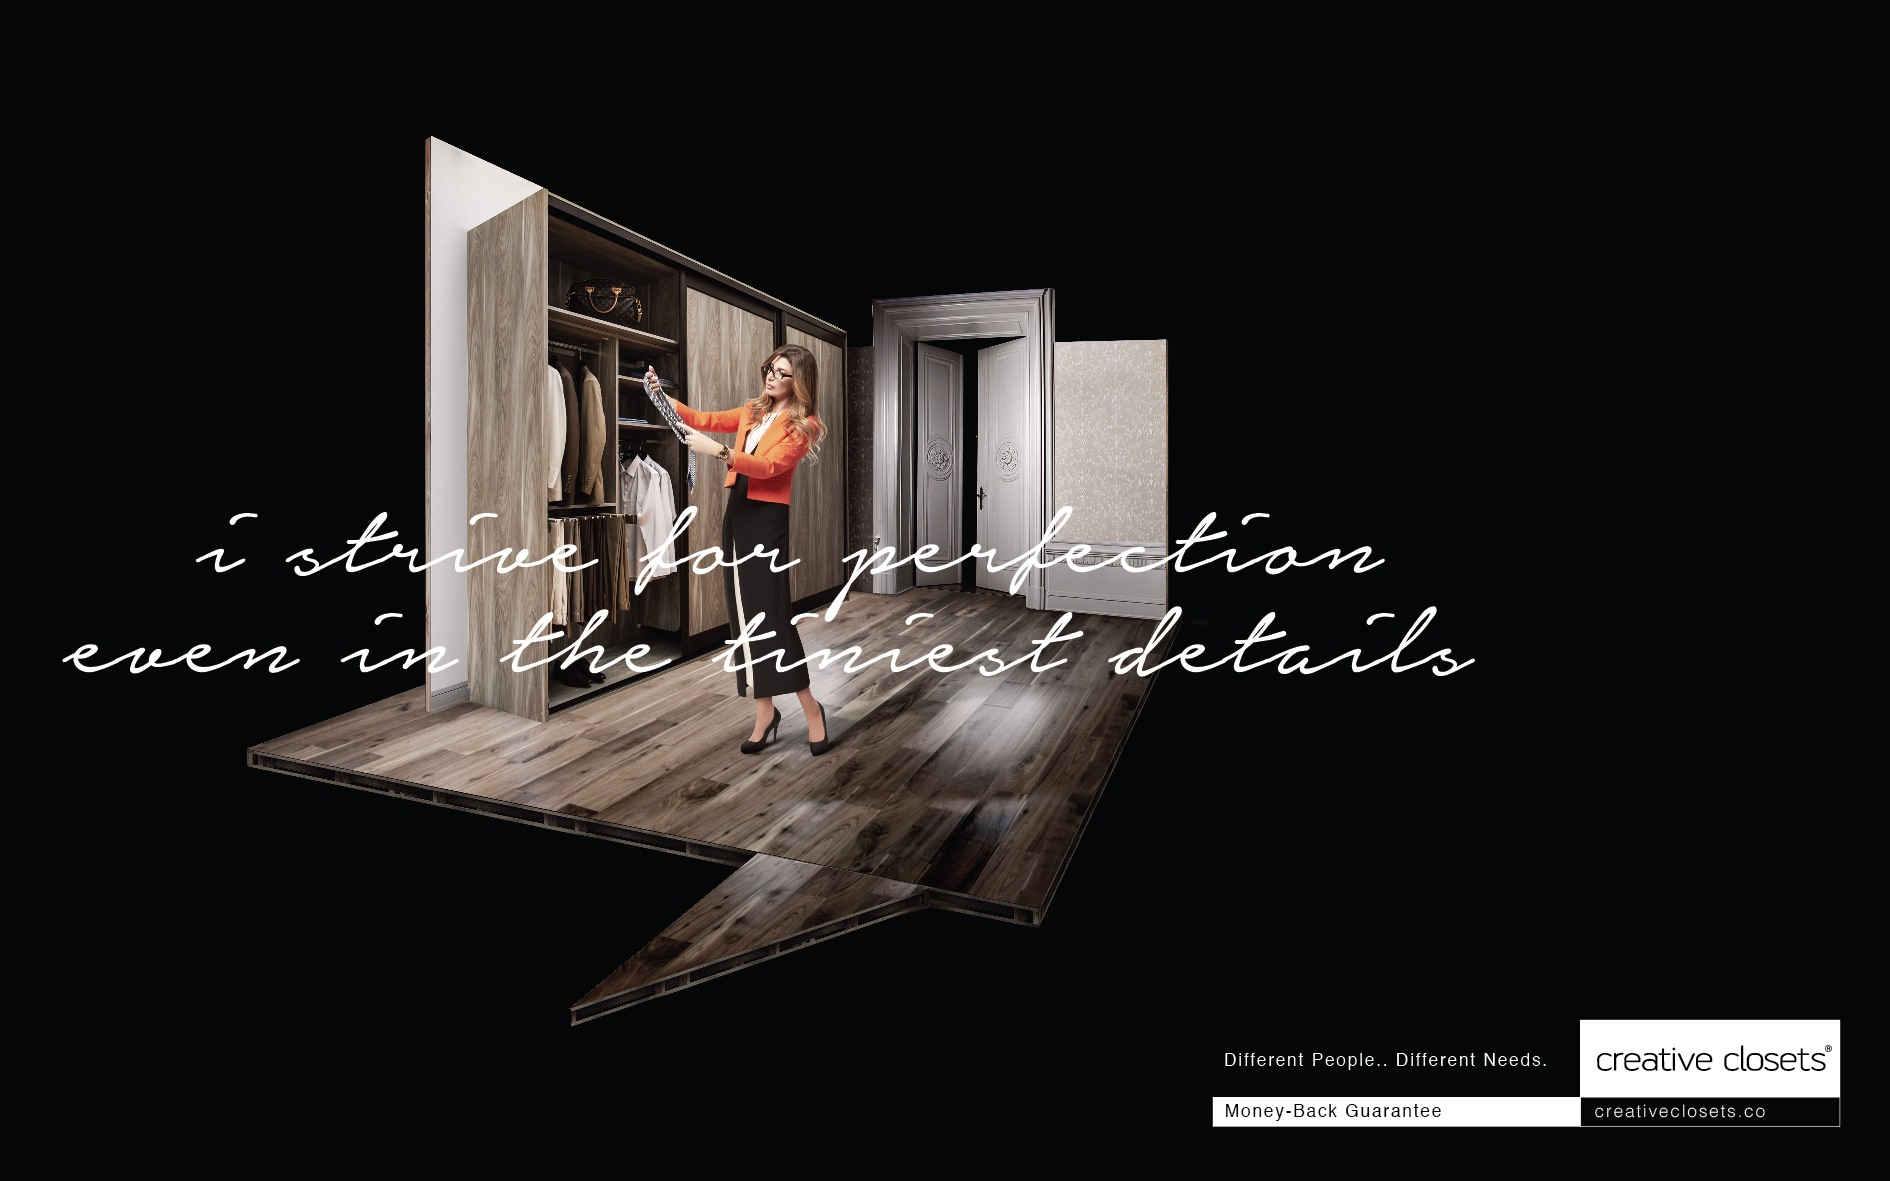 Creative Closets Print Ad   Money Back Guarantee